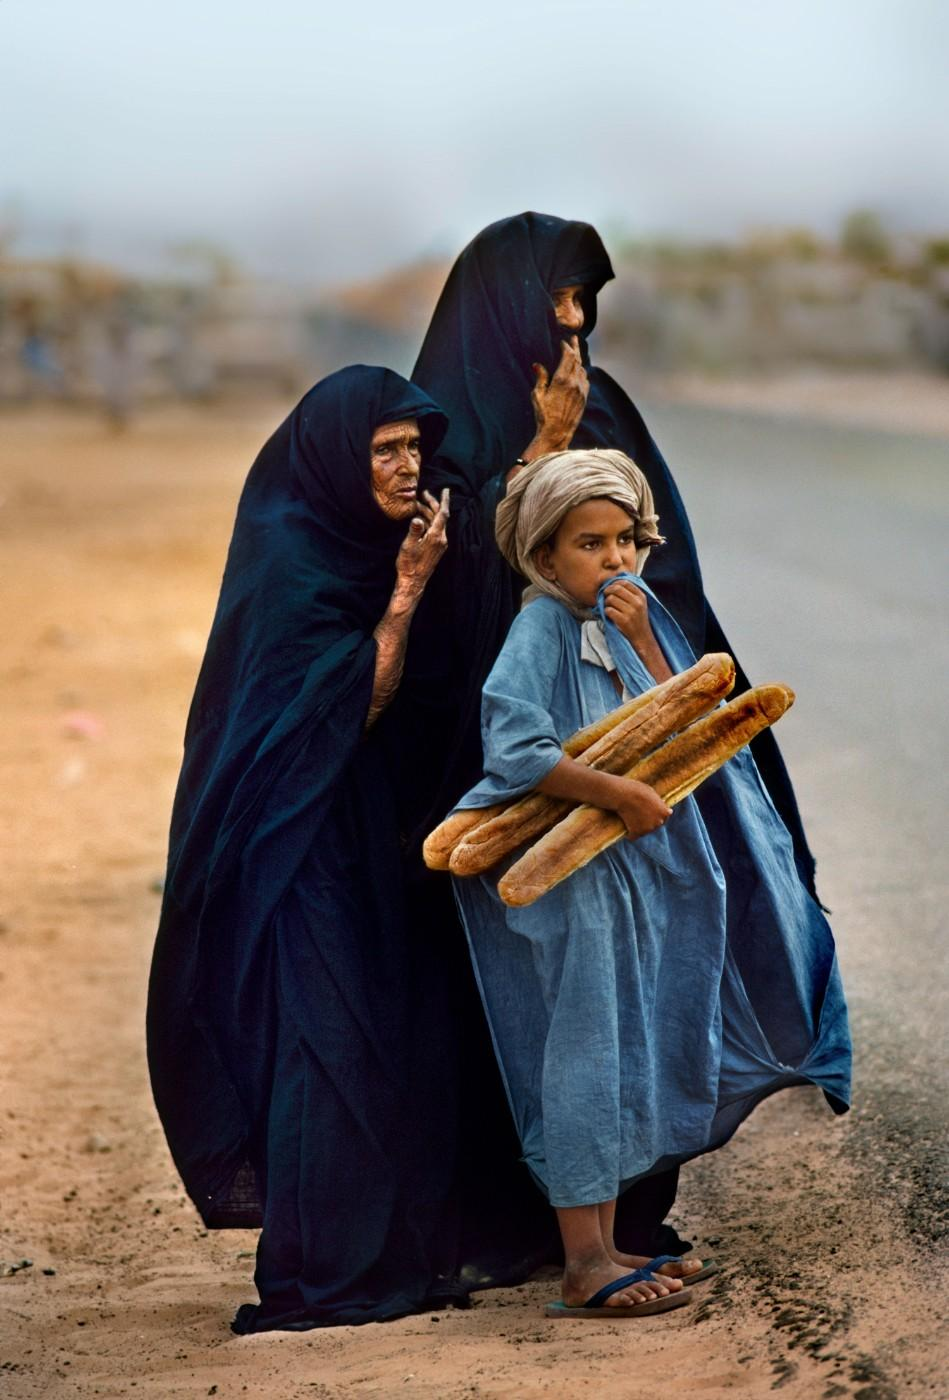 Steve McCurry, Mauritania, 1986.